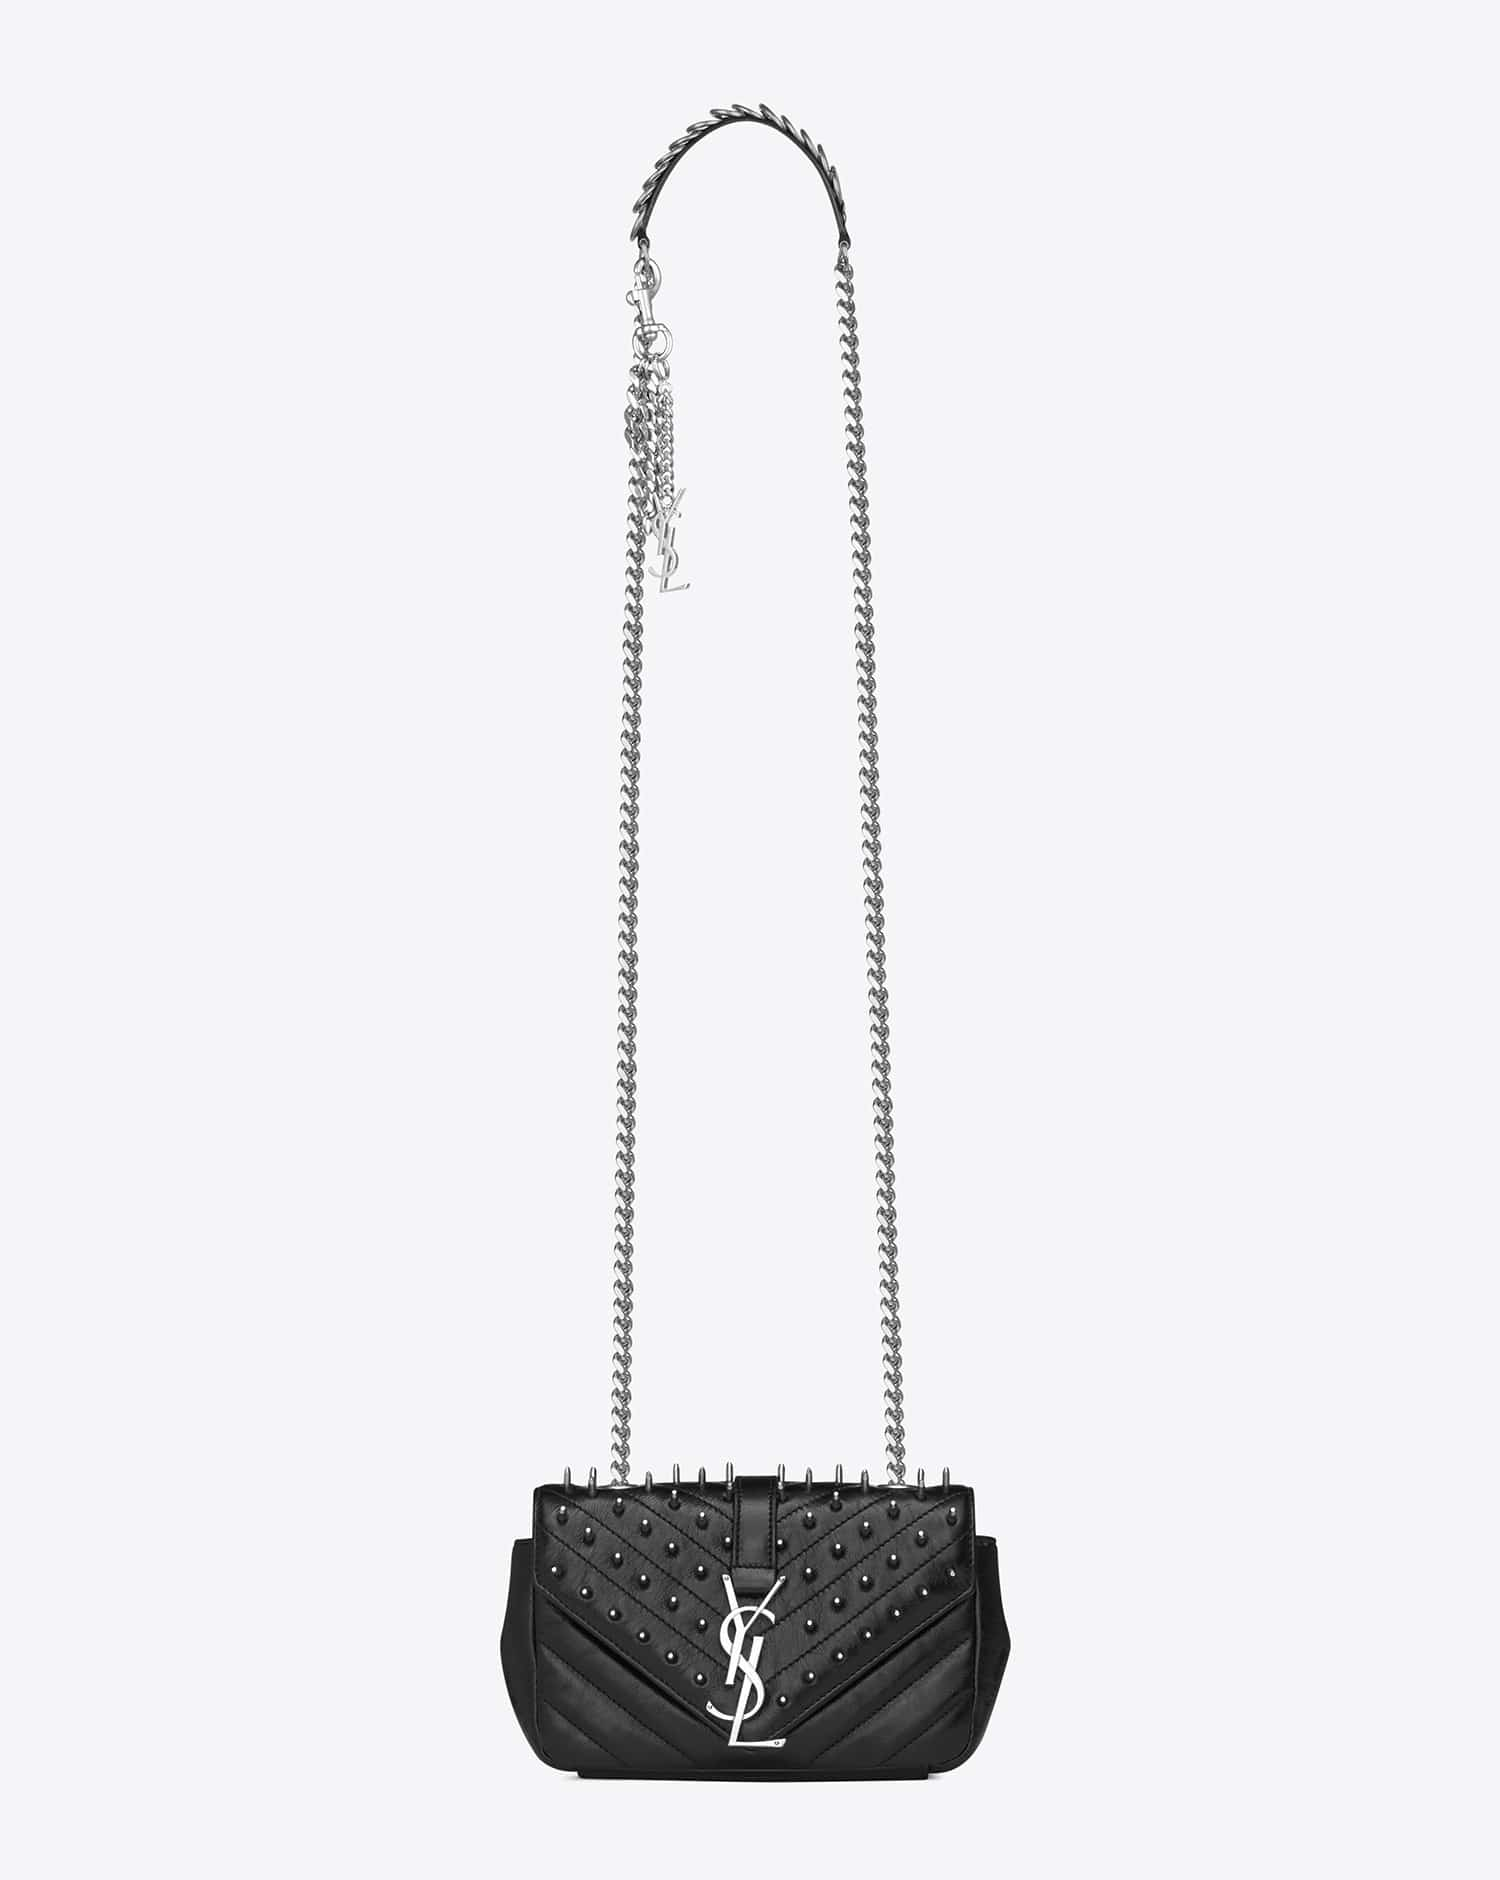 eb568082532 cheap ysl bags uk - Saint Laurent Fall/Winter 2015 Bag Collection Featuring  Punk Chain ...